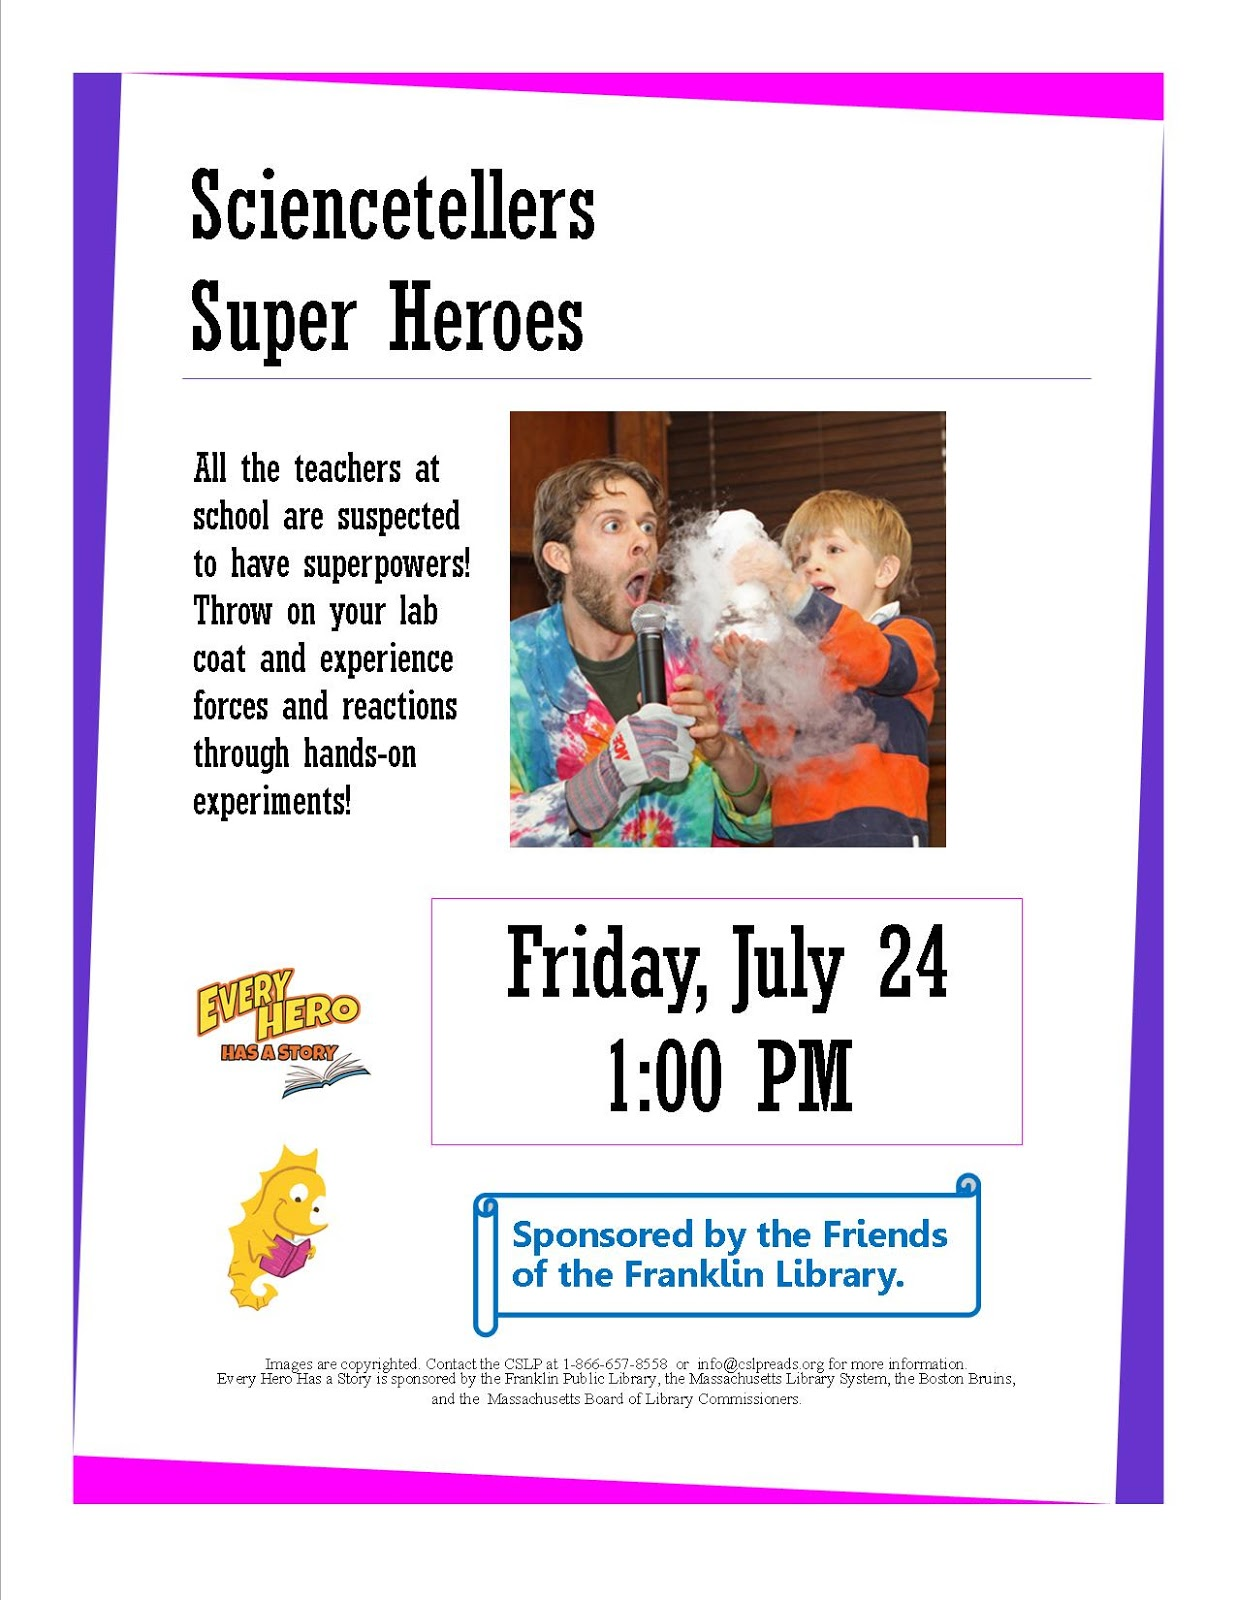 Franklin Library: Sciencetellers Super Heroes